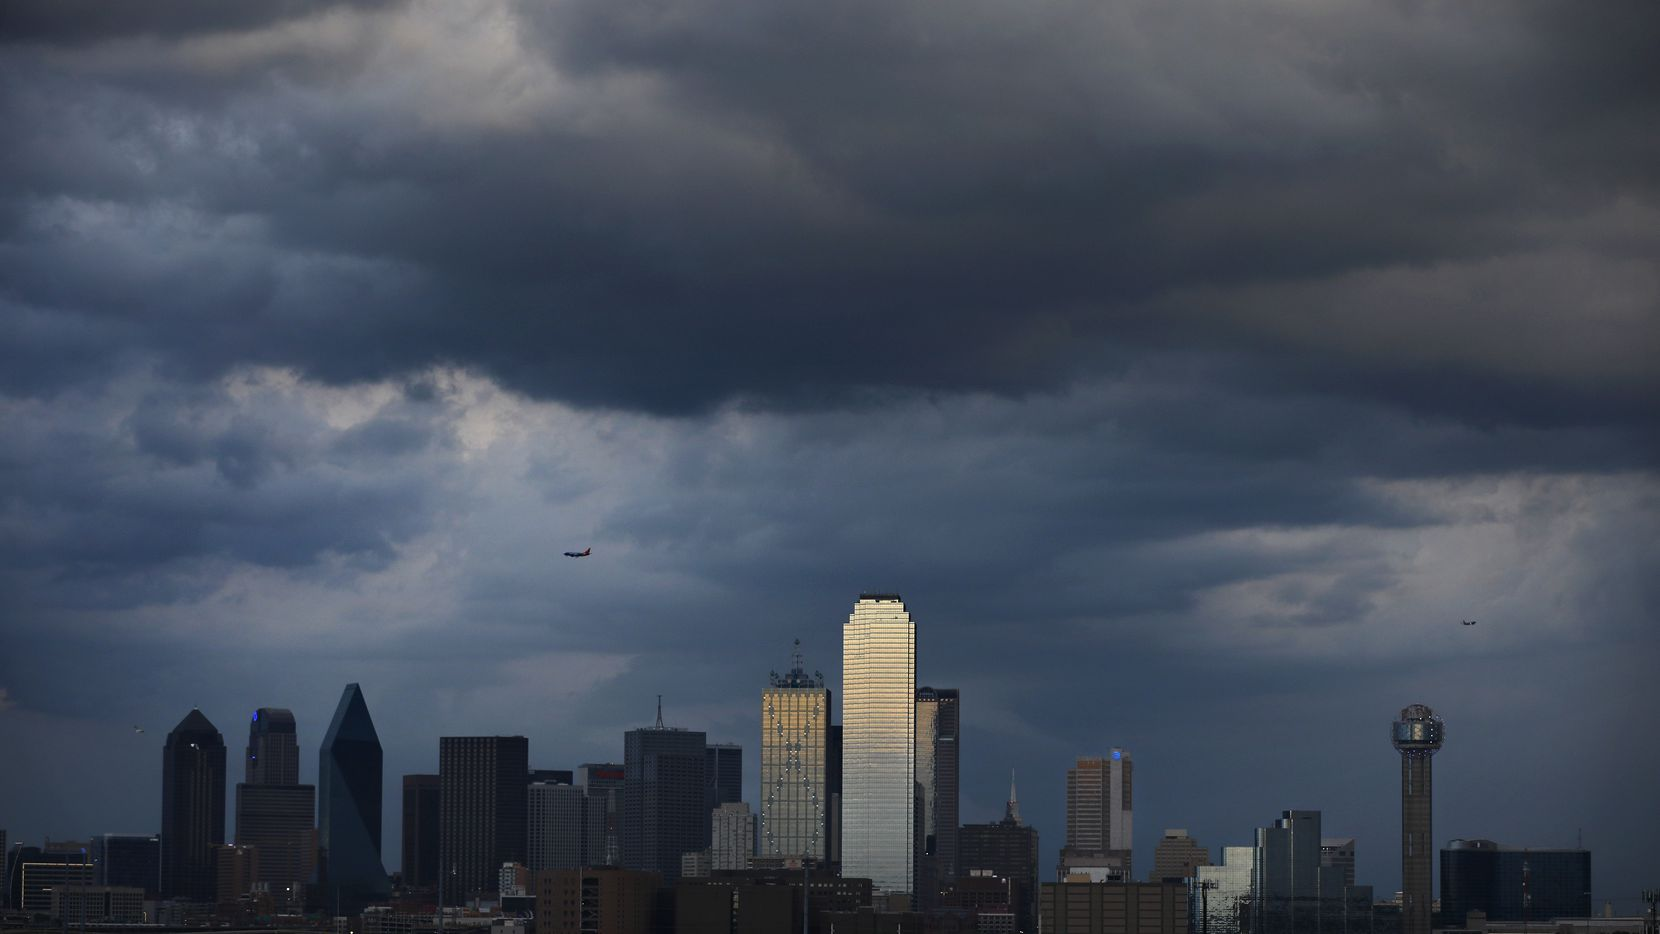 Thunderstorms clear downtown Dallas this evening ushering in north winds and cooler temperatures, Friday, April 6. Except temperatures in the 30's tomorrow morning.